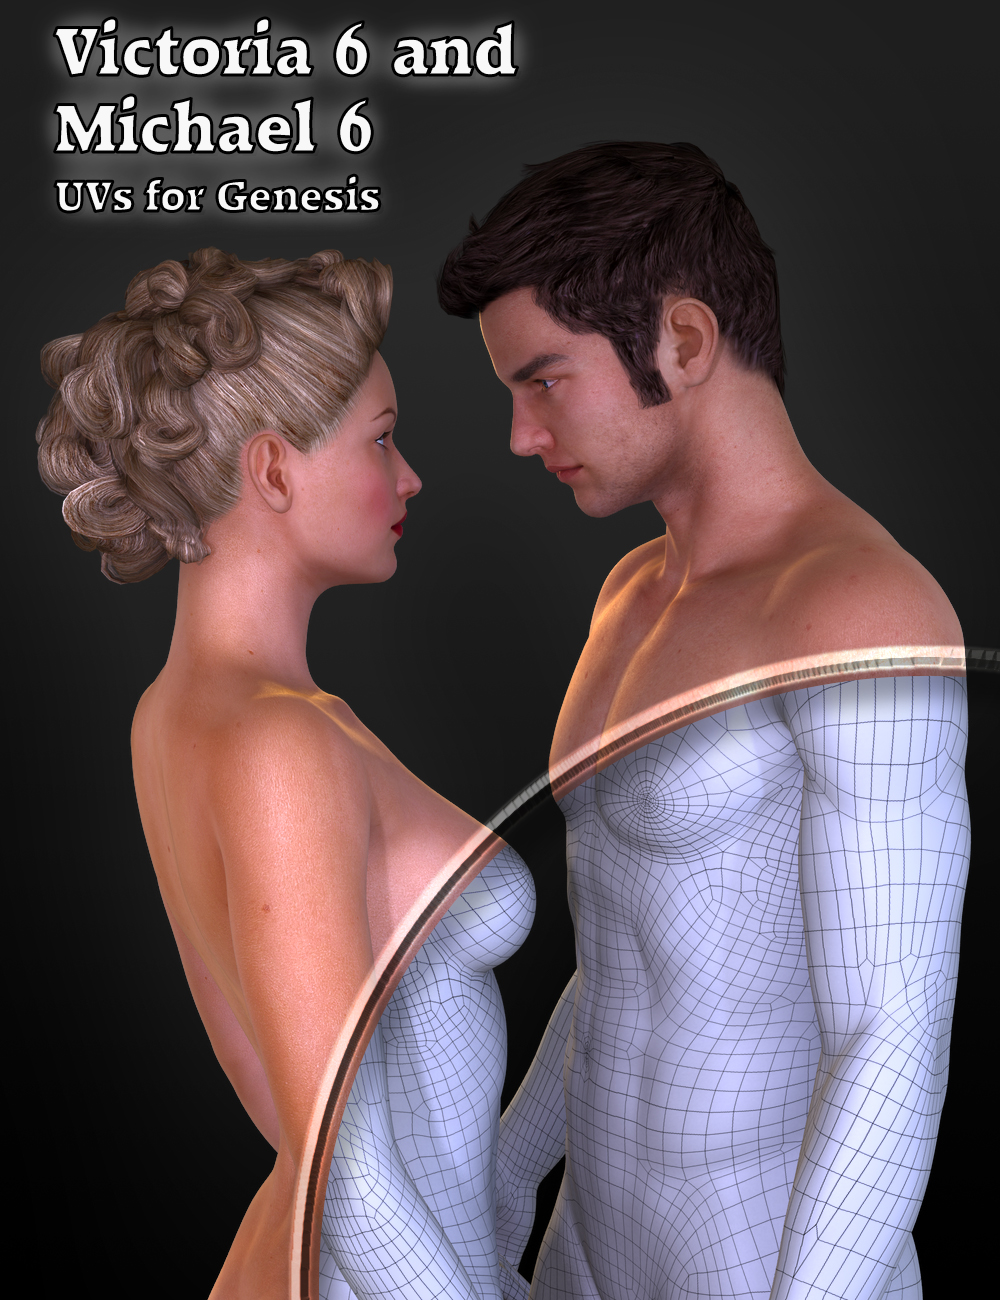 Victoria 6 and Michael 6 UVs for Genesis by: DraagonStormSloshWerks, 3D Models by Daz 3D